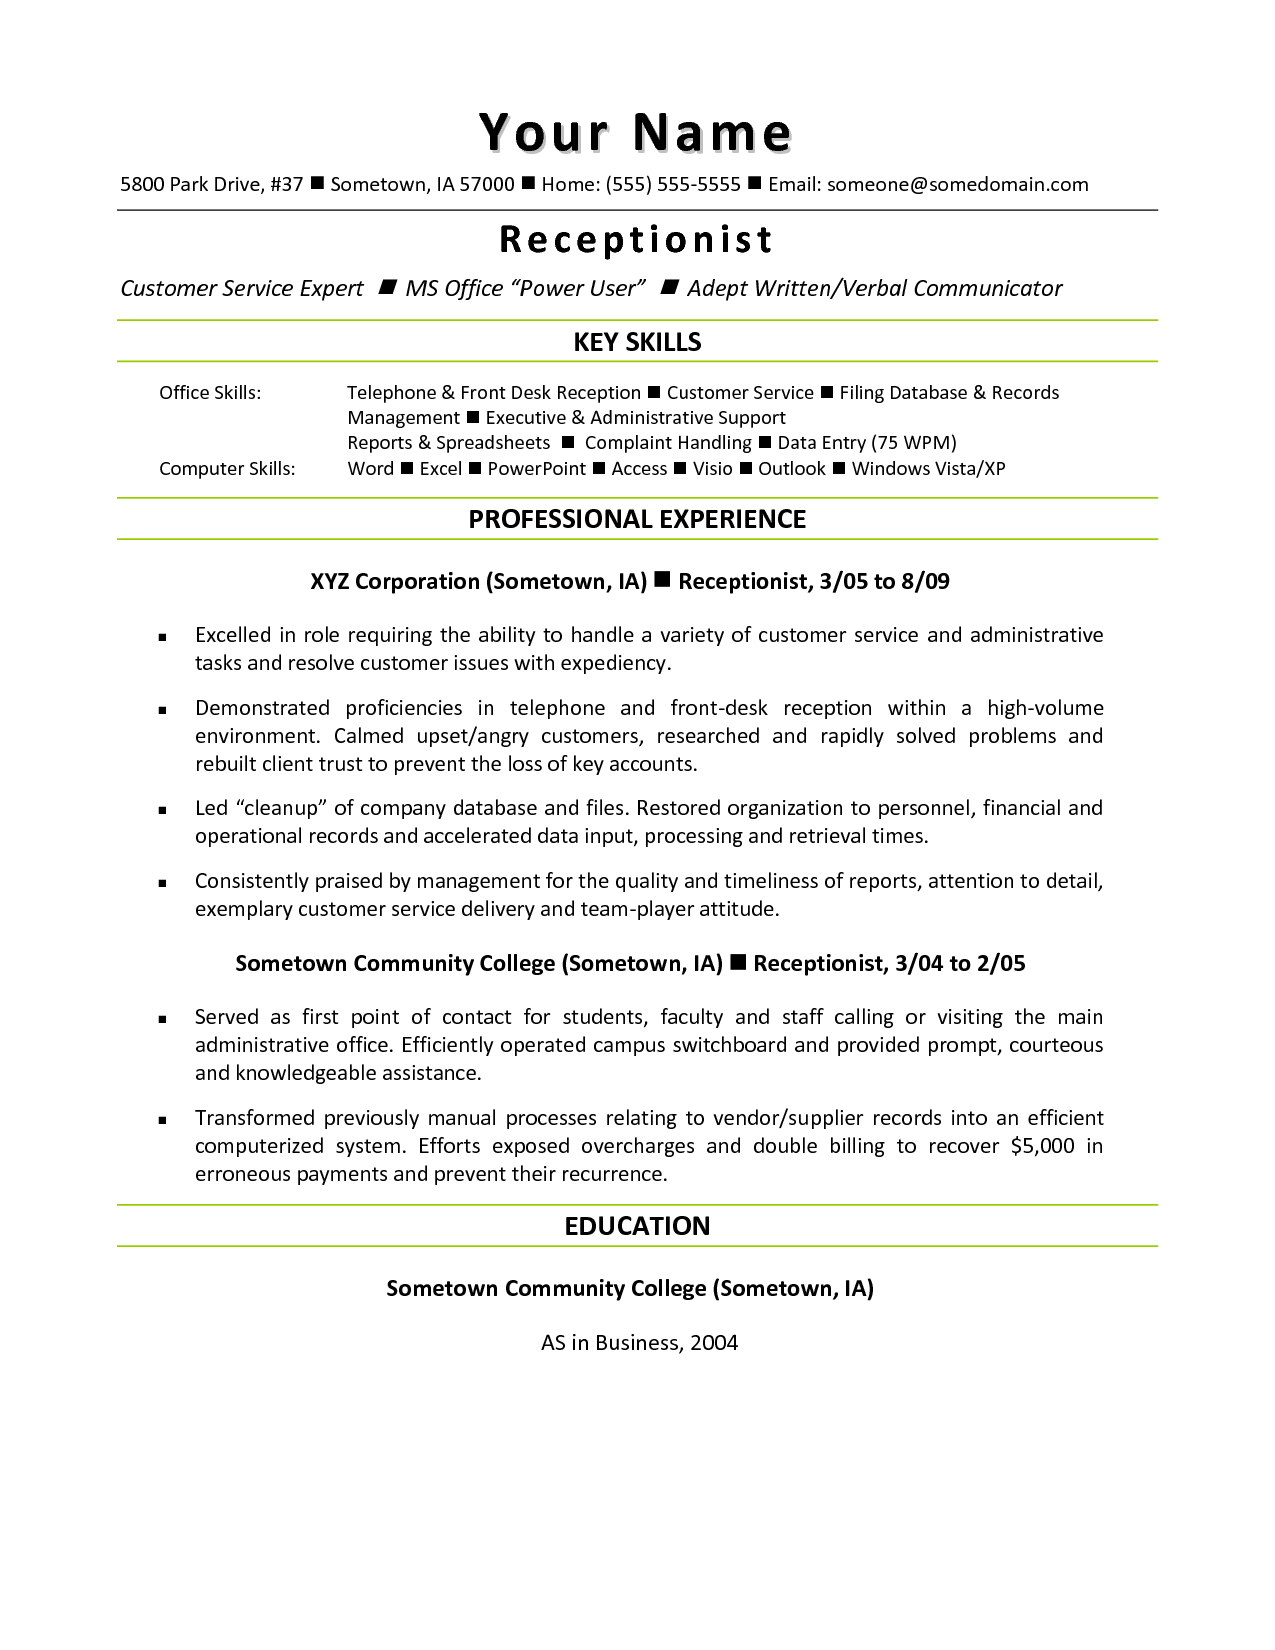 Law Front Office Receptionist Resume Key Skills And Professional Experience Firm